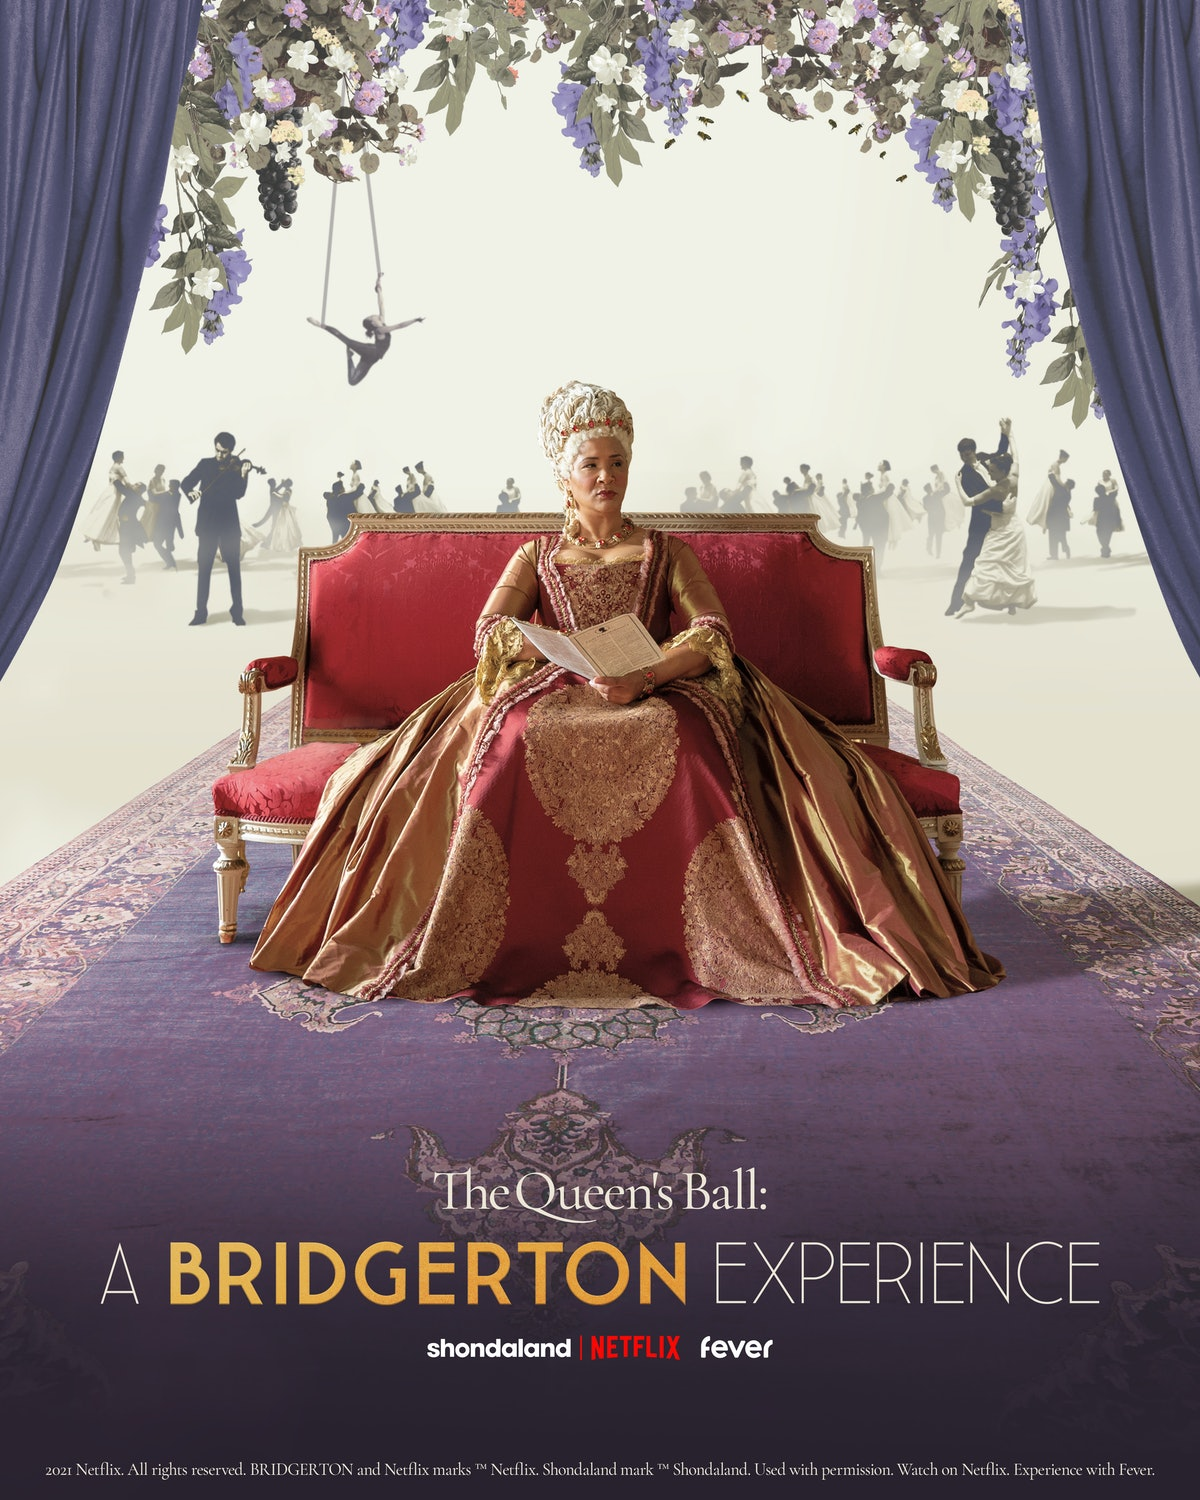 'The Queen's Ball: A Bridgerton Experience' is an immersive show happening in 2022 in select cities ...